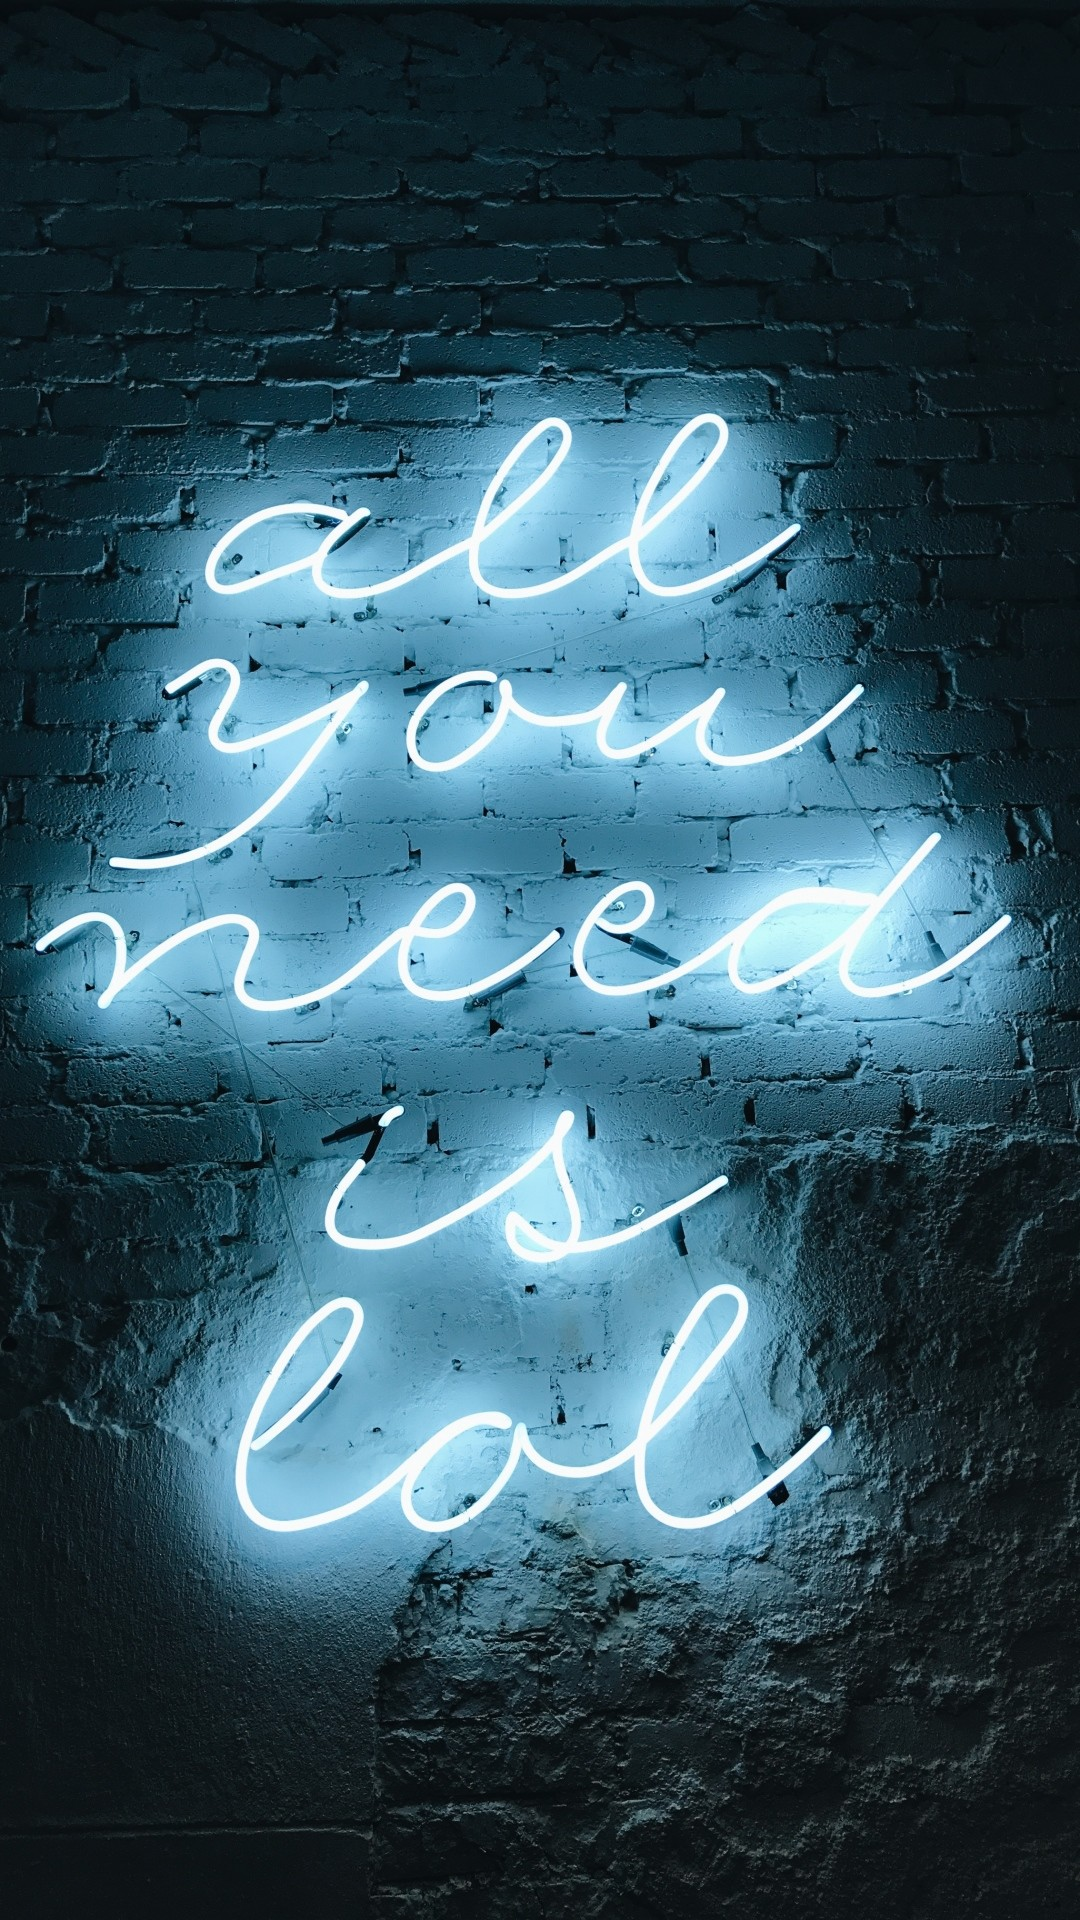 Free All yu need is lol phone wallpaper by goon813